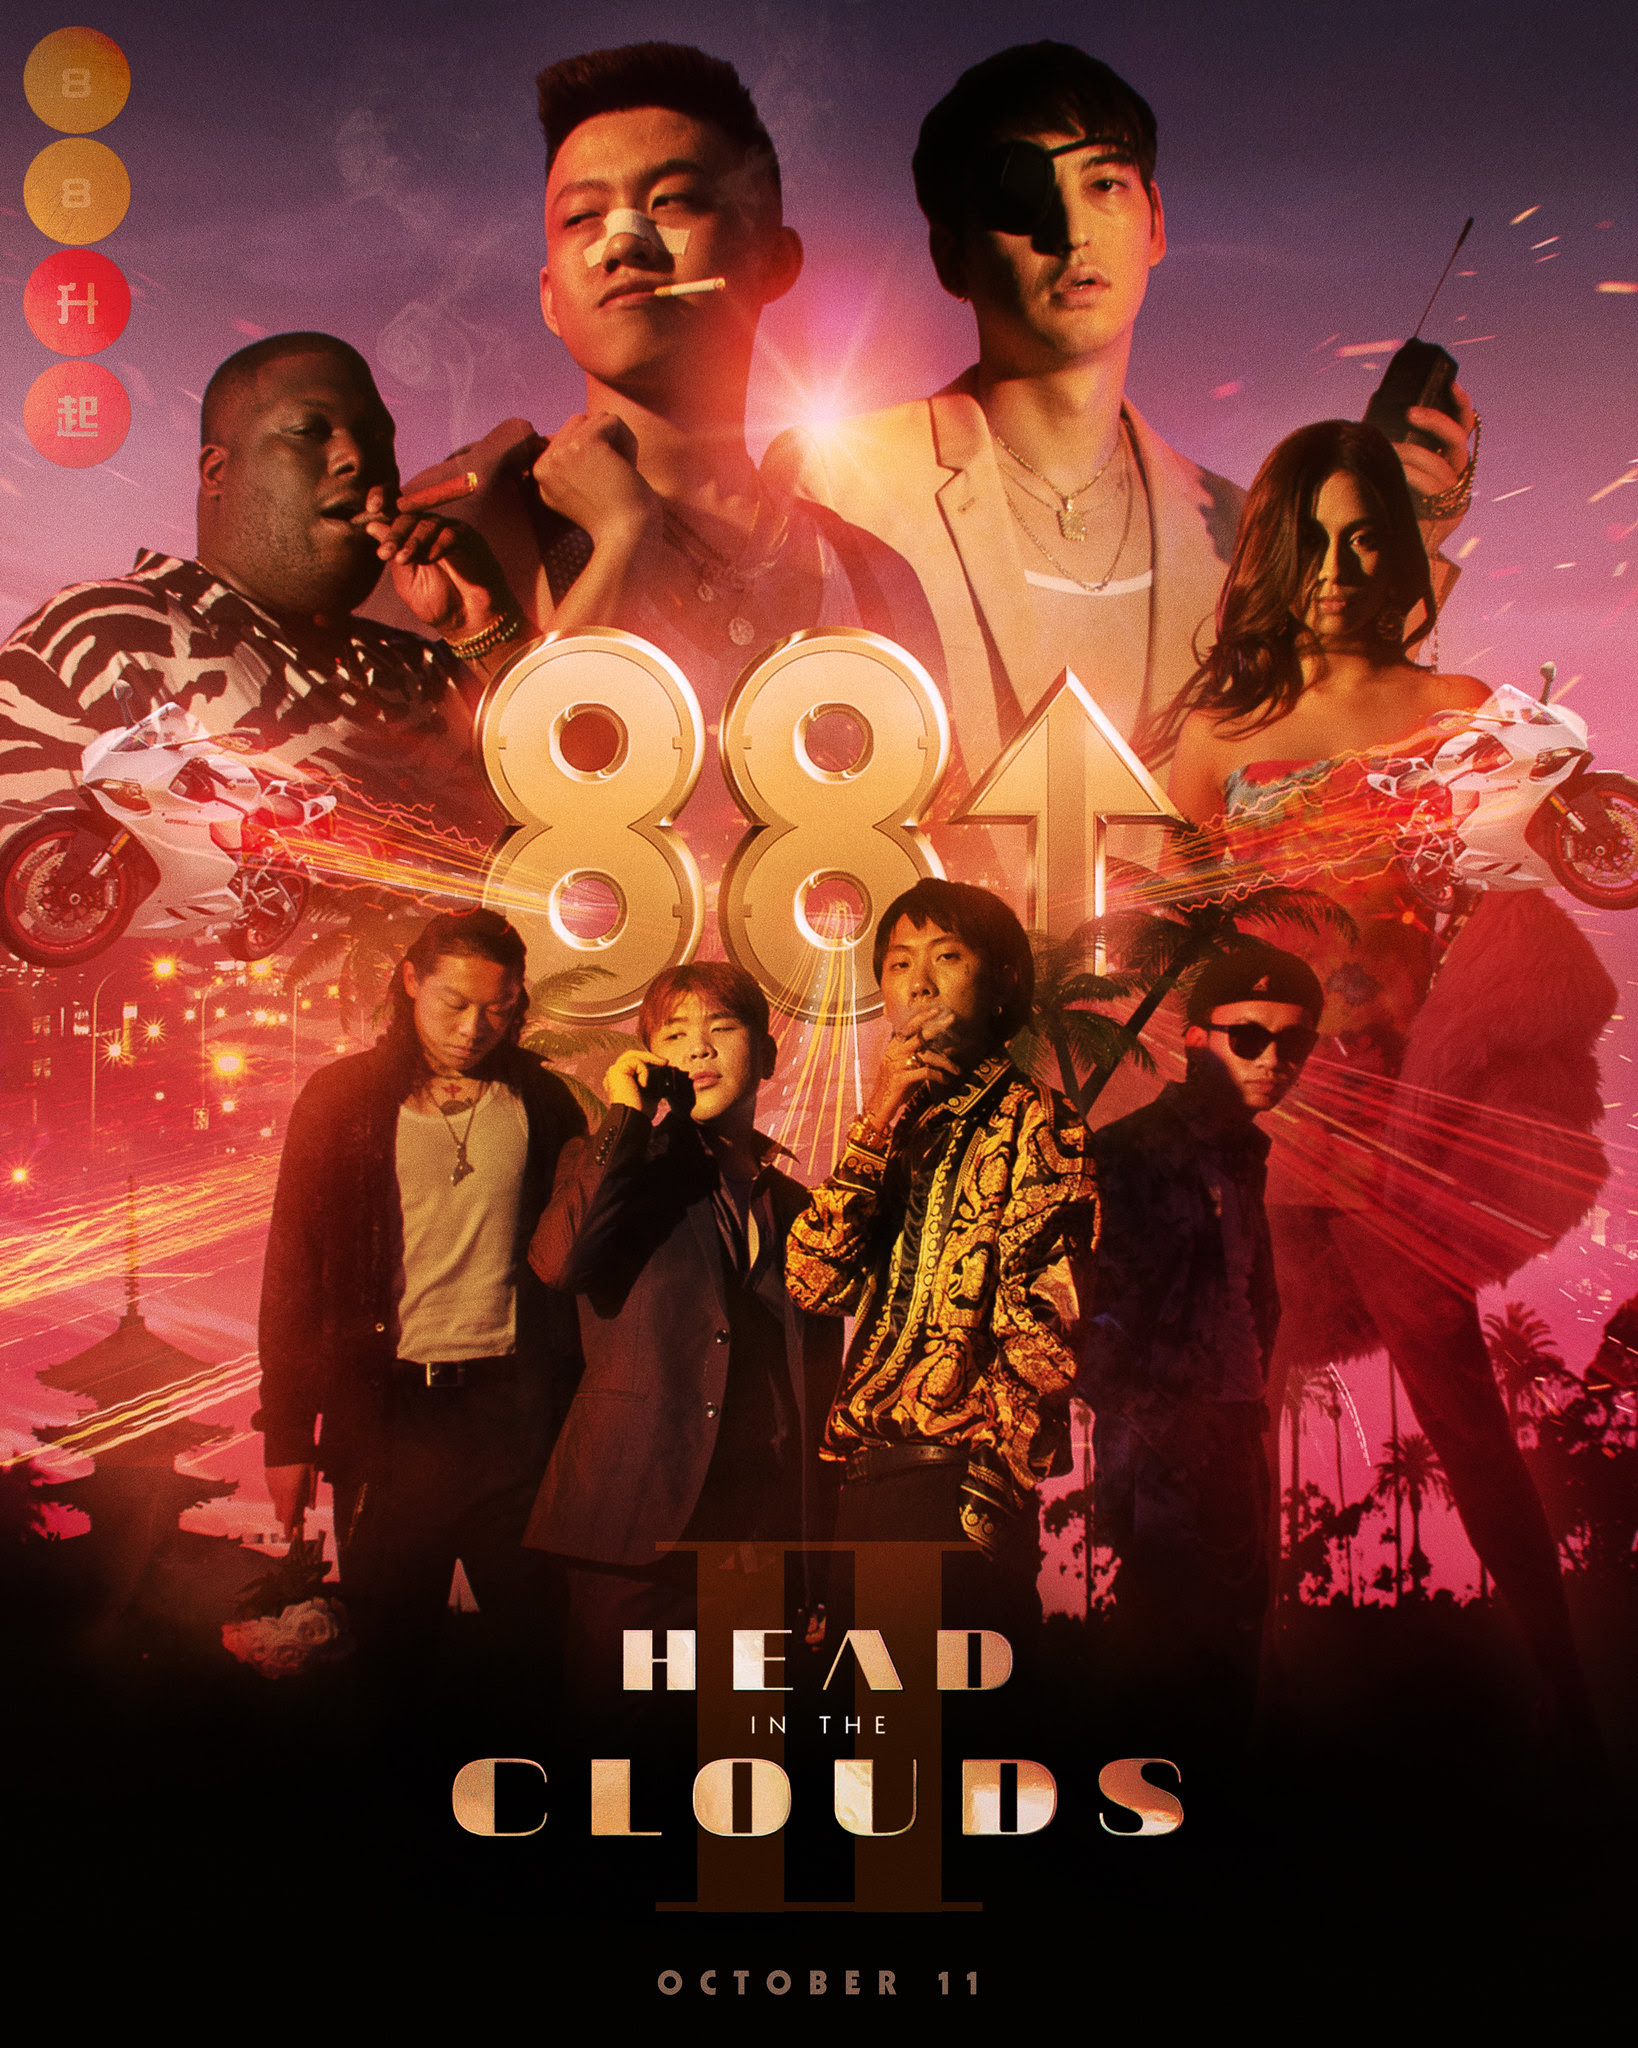 88rising releases sophomore album 'Head In The Clouds II'